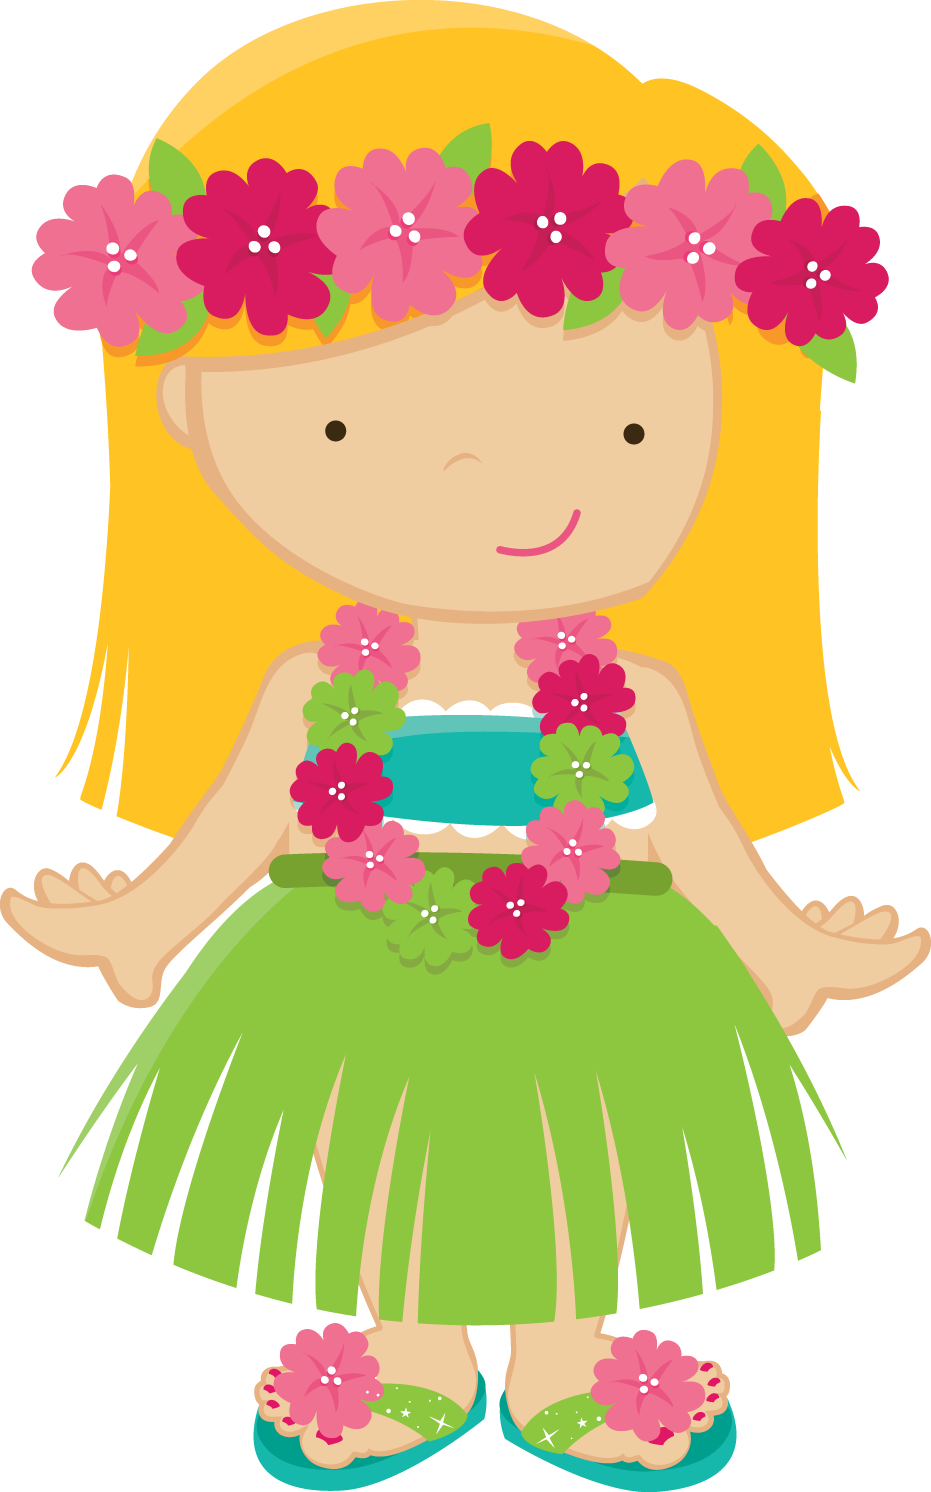 Say Aloha To American Girl S Newest Historical Character: Oh My Fiesta! In English